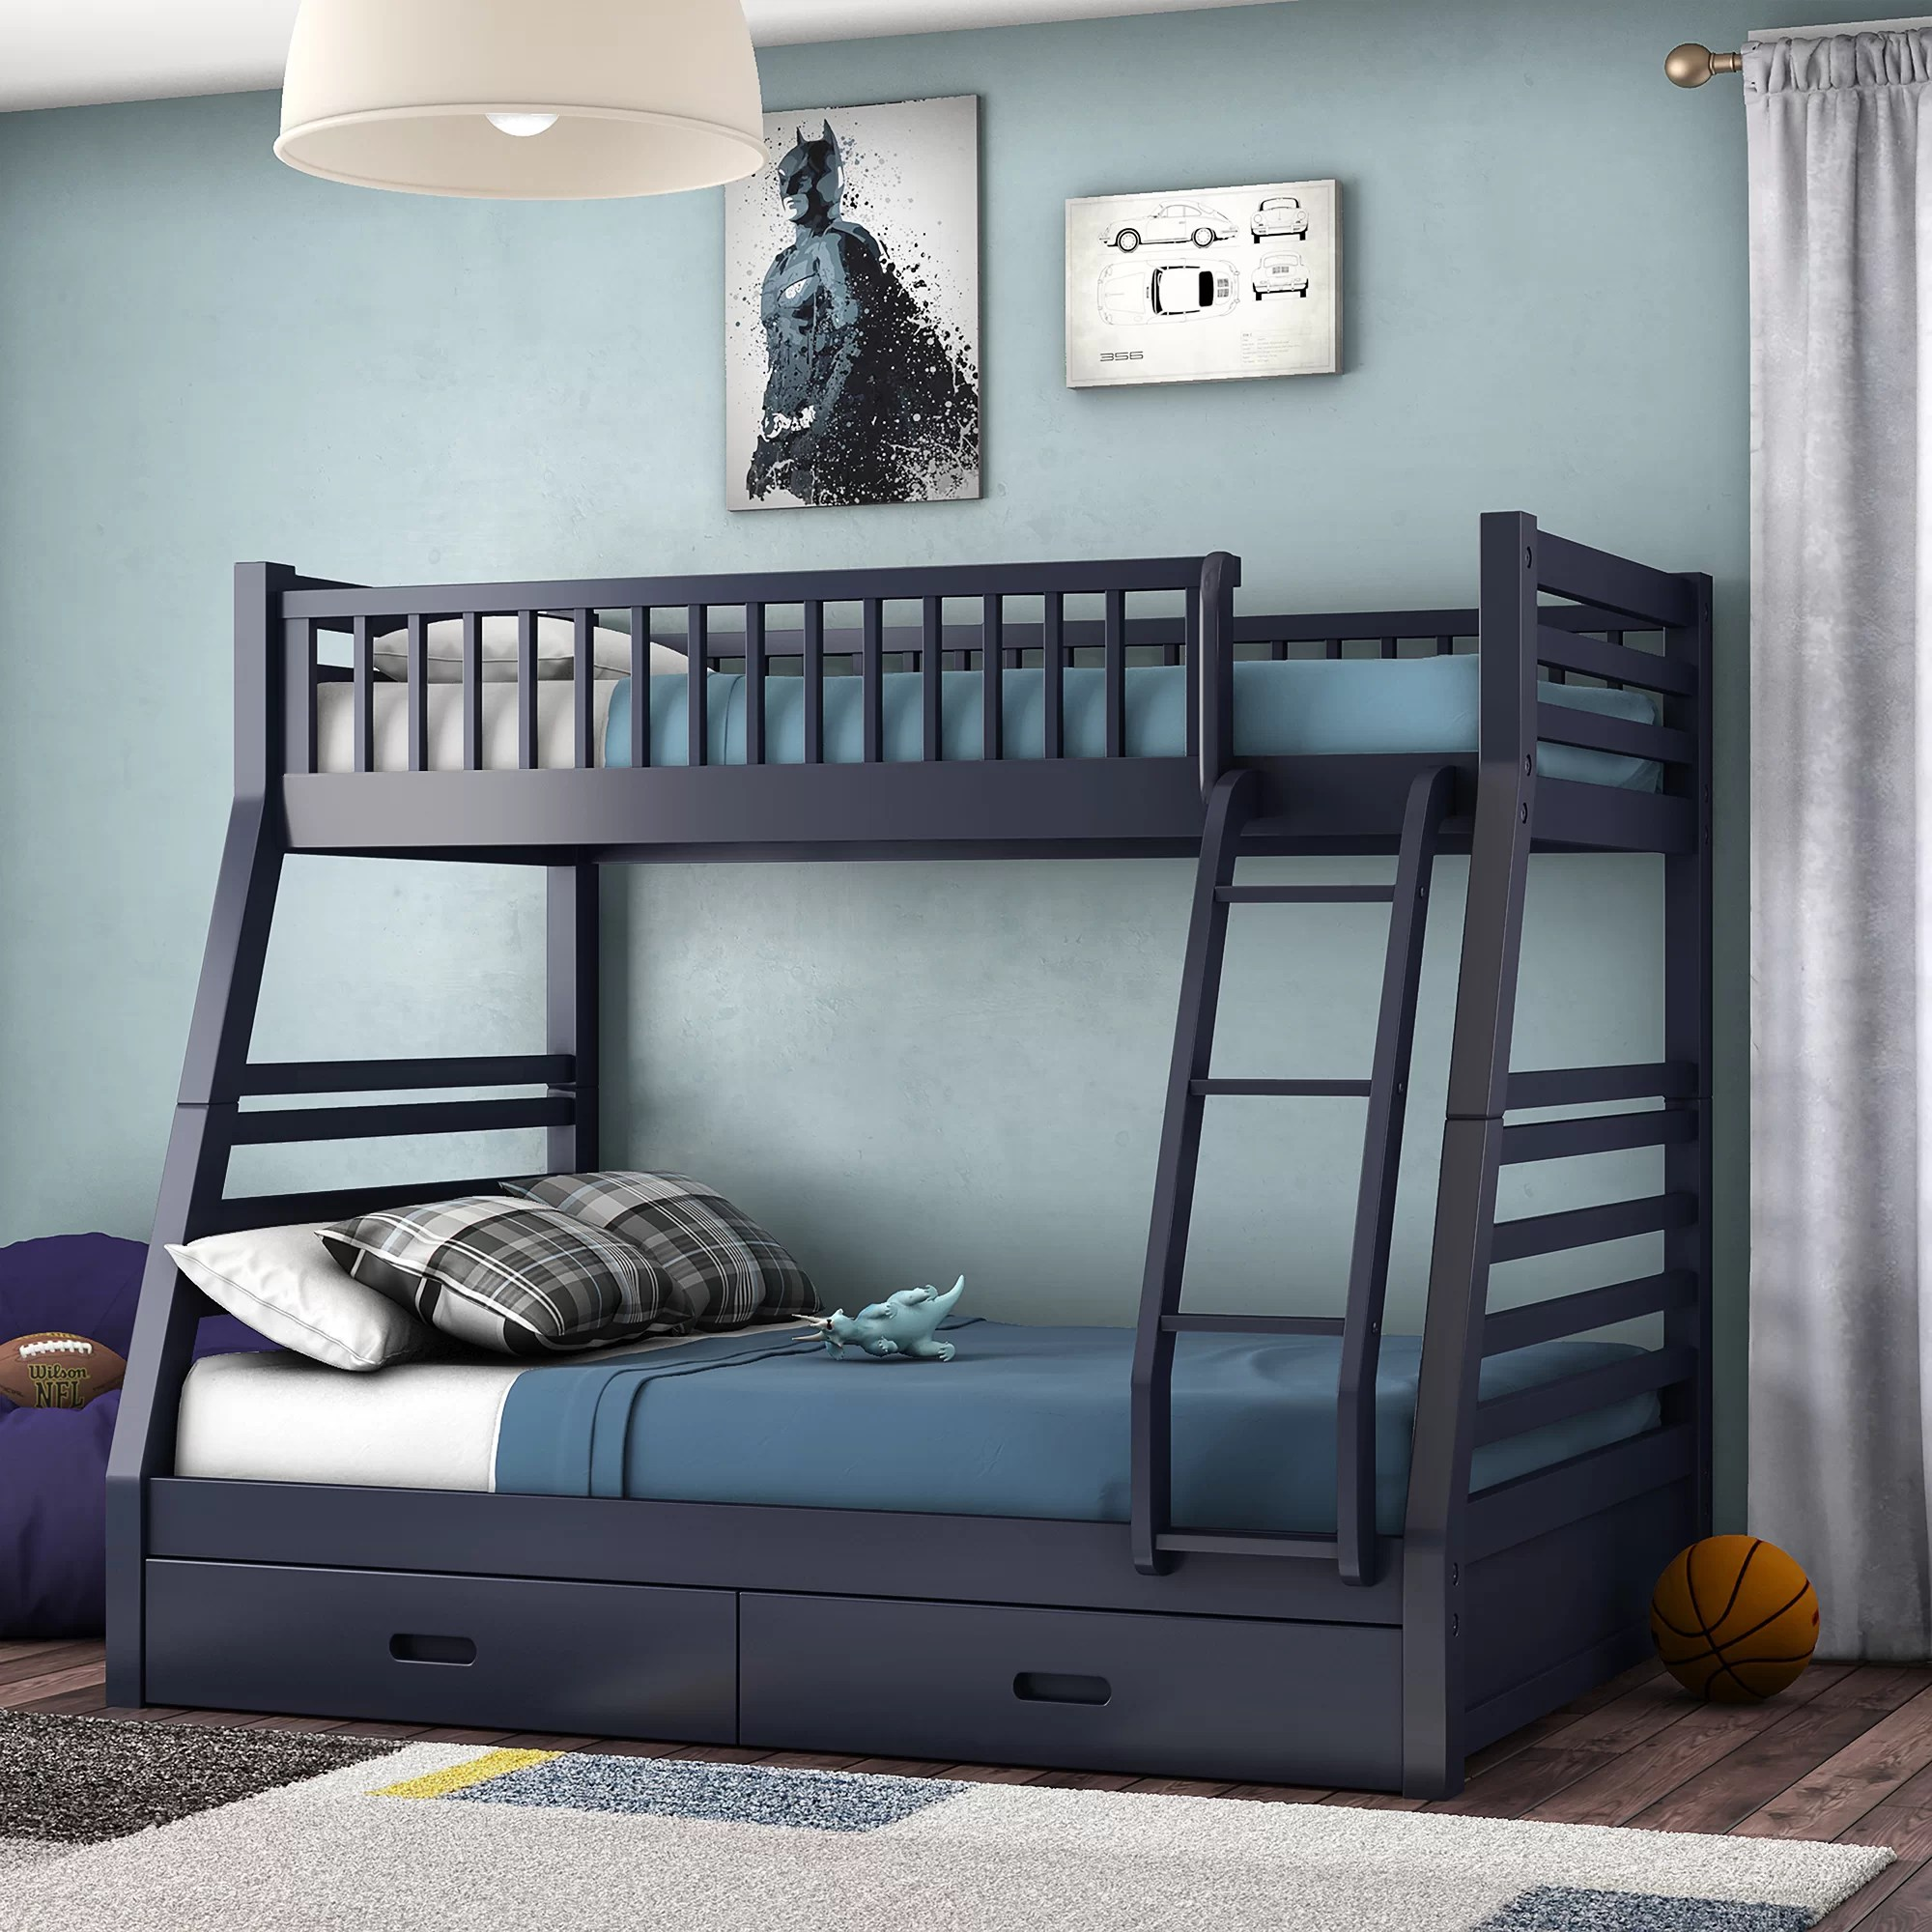 Snooze Bunk Beds Rafael Twin Over Full Bunk Bed With Storage